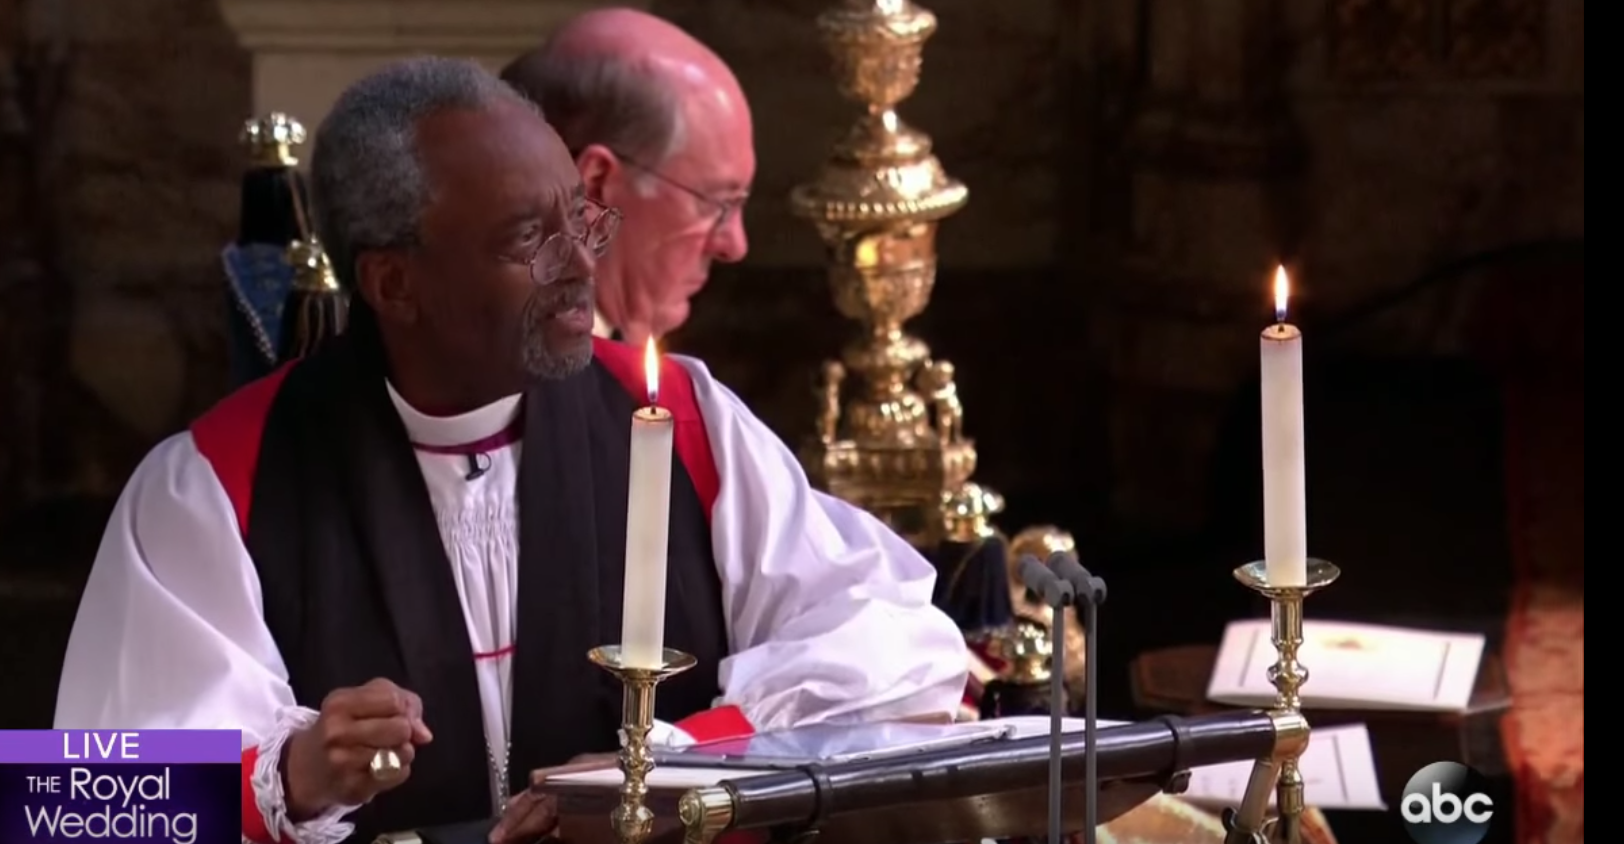 Black Preacher At Royal Wedding.Bishop Curry And His Royal Sermon The Gospel Coalition Australia